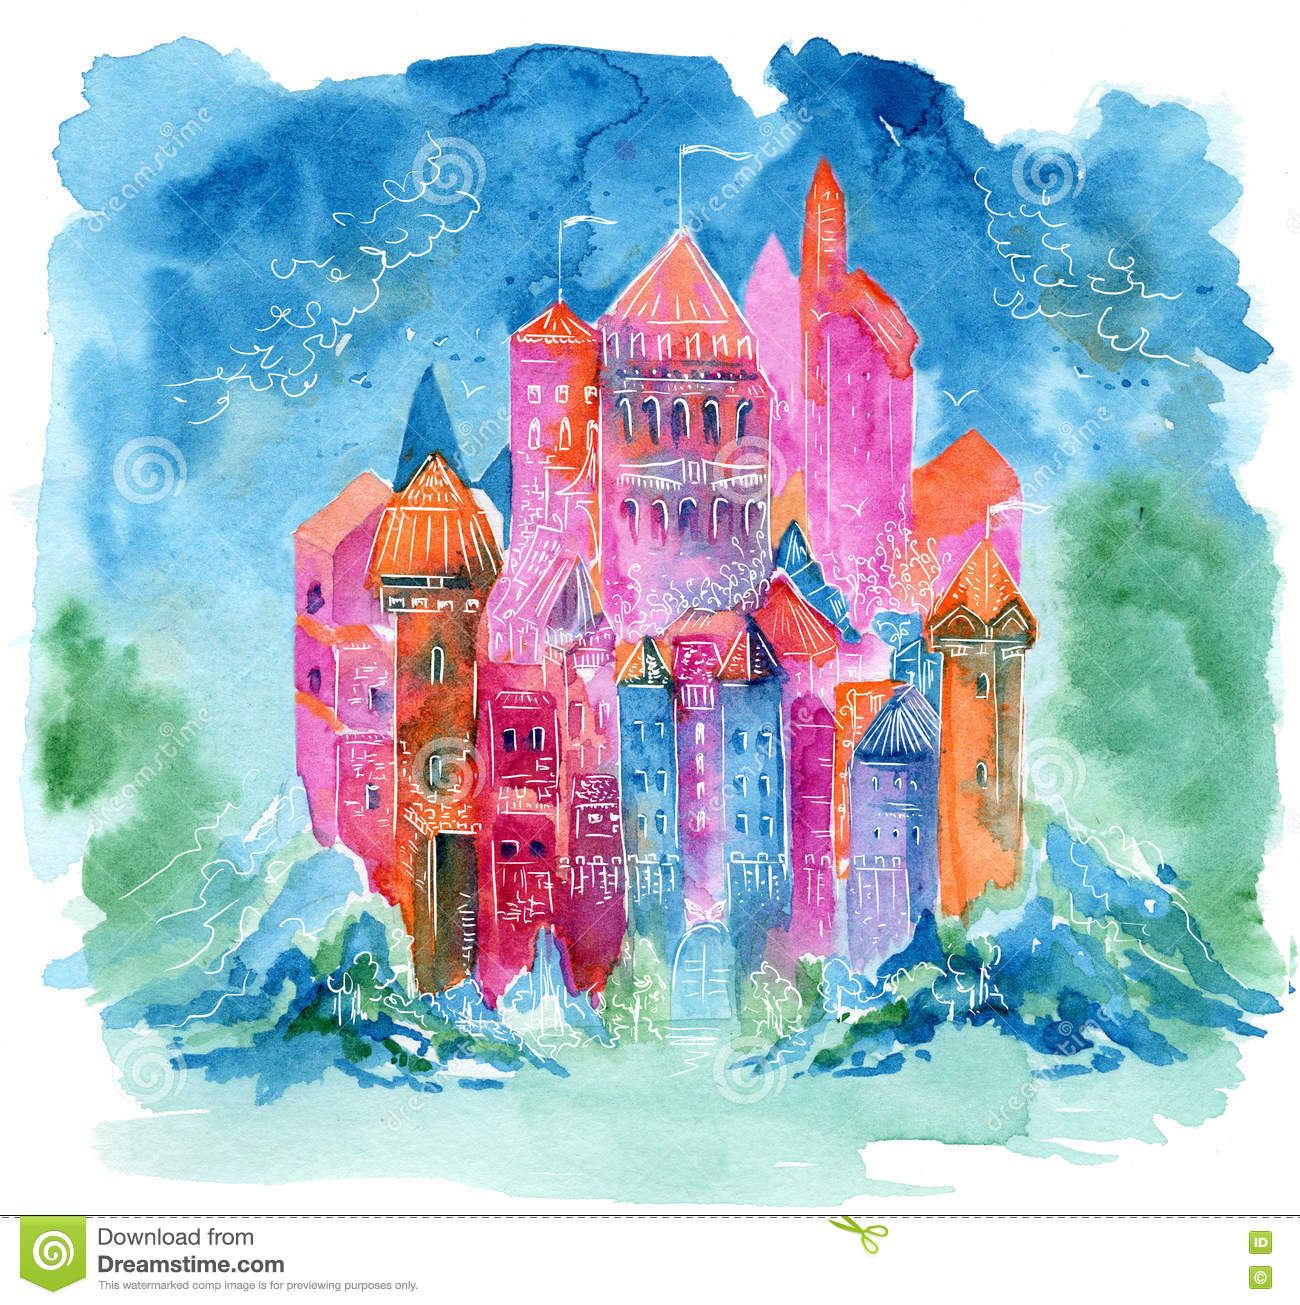 Book Cover Watercolor Paintings : Rainbow castle fantasy watercolor illustration stock